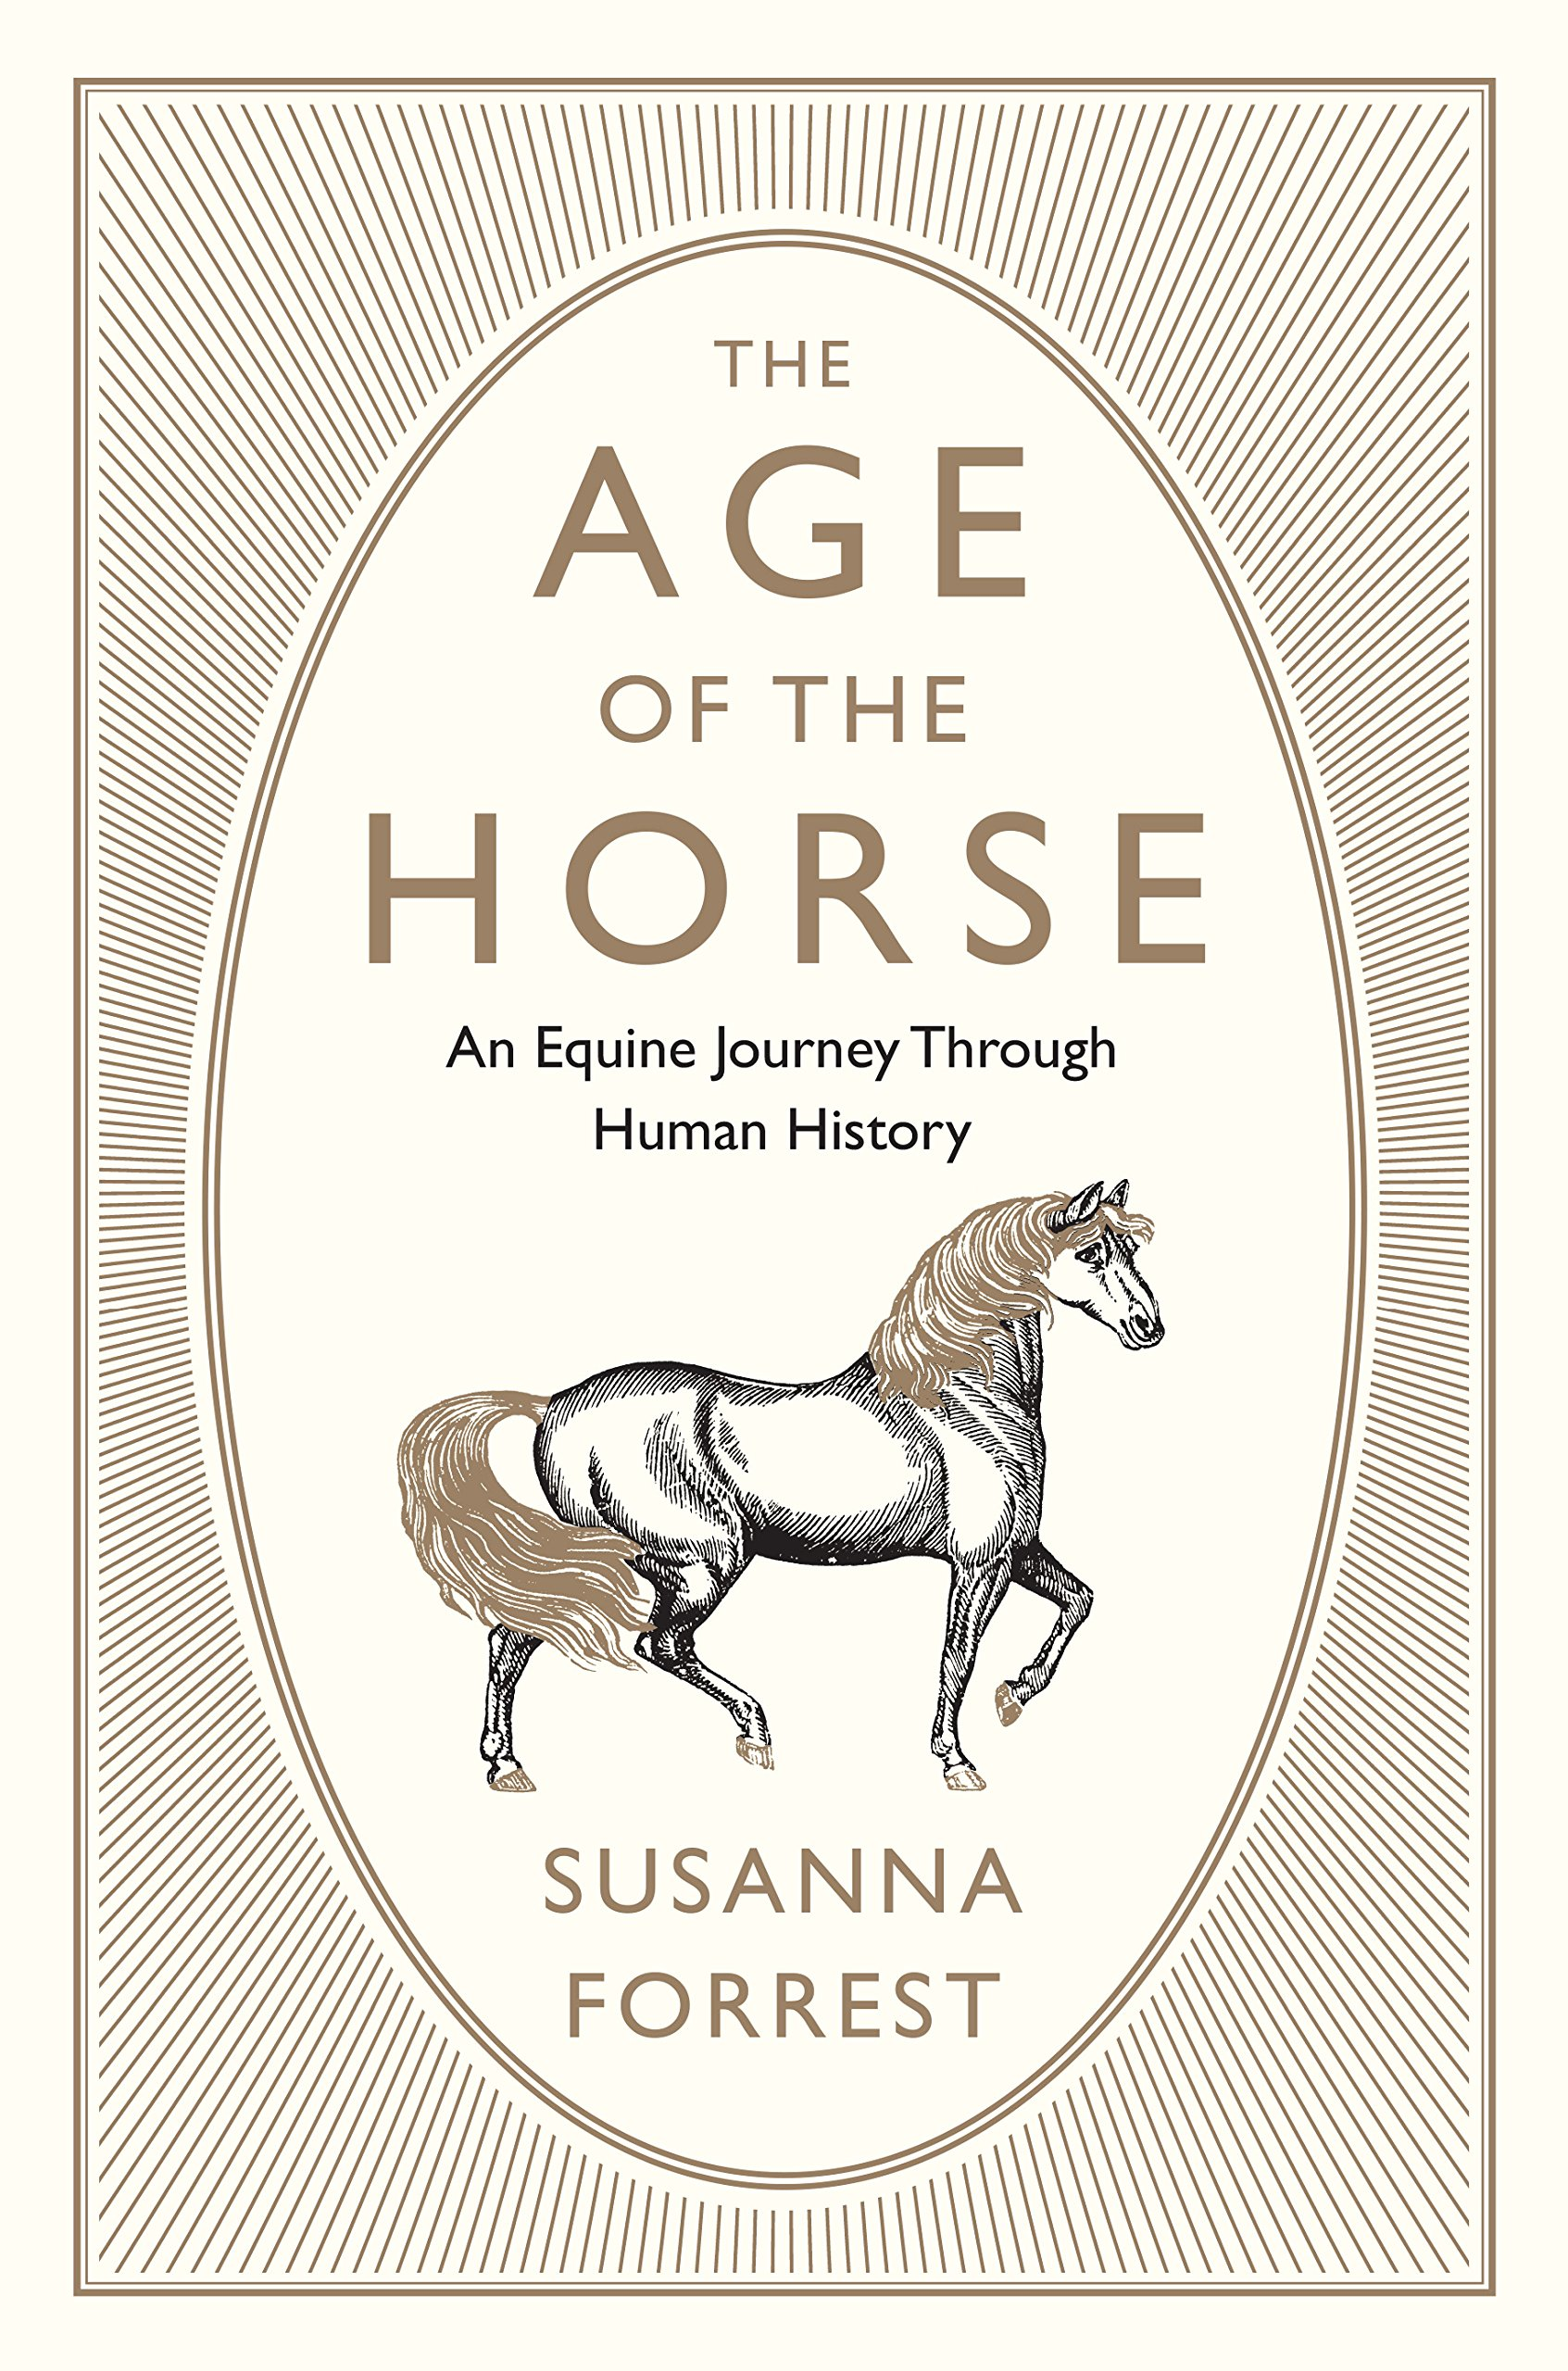 The Age of the Horse: An Equine Journey Through Human History: Forrest,  Susanna: 9780802126511: Amazon.com: Books